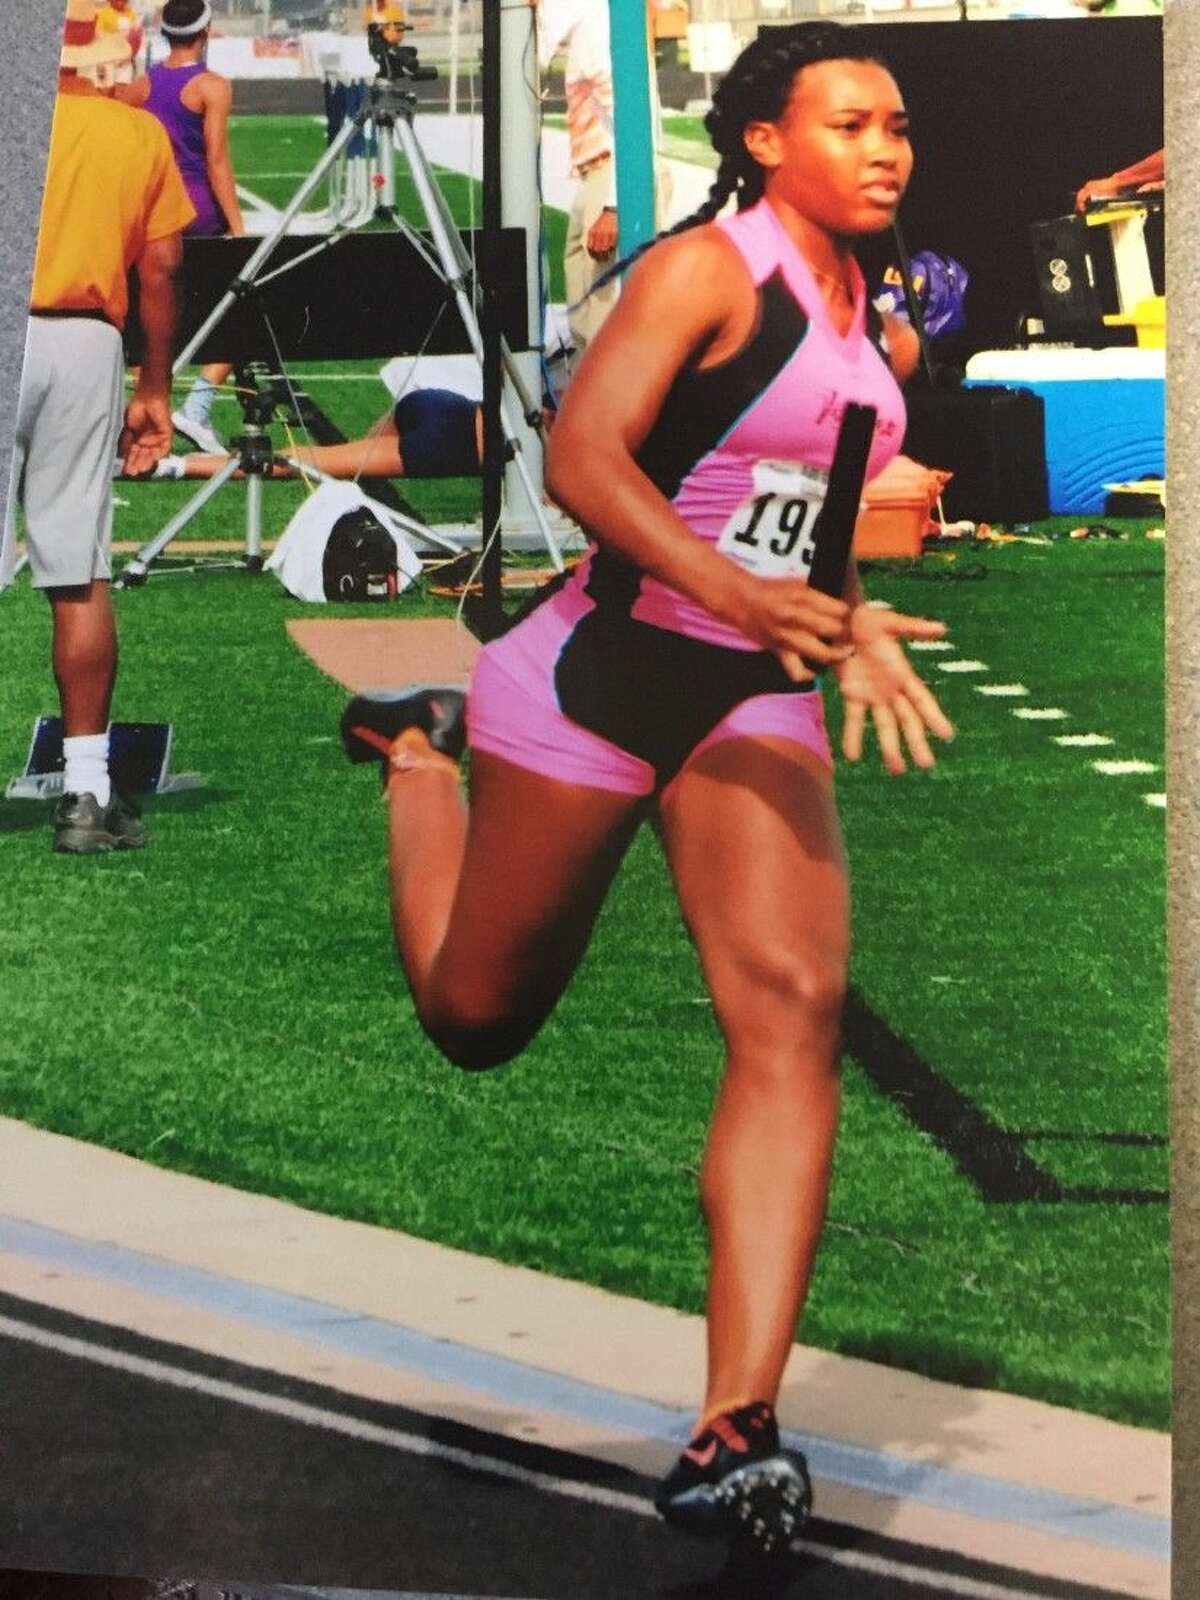 Dawson track athlete Paige Kimble is competing at a Junior AAU track and field event in Virginia.